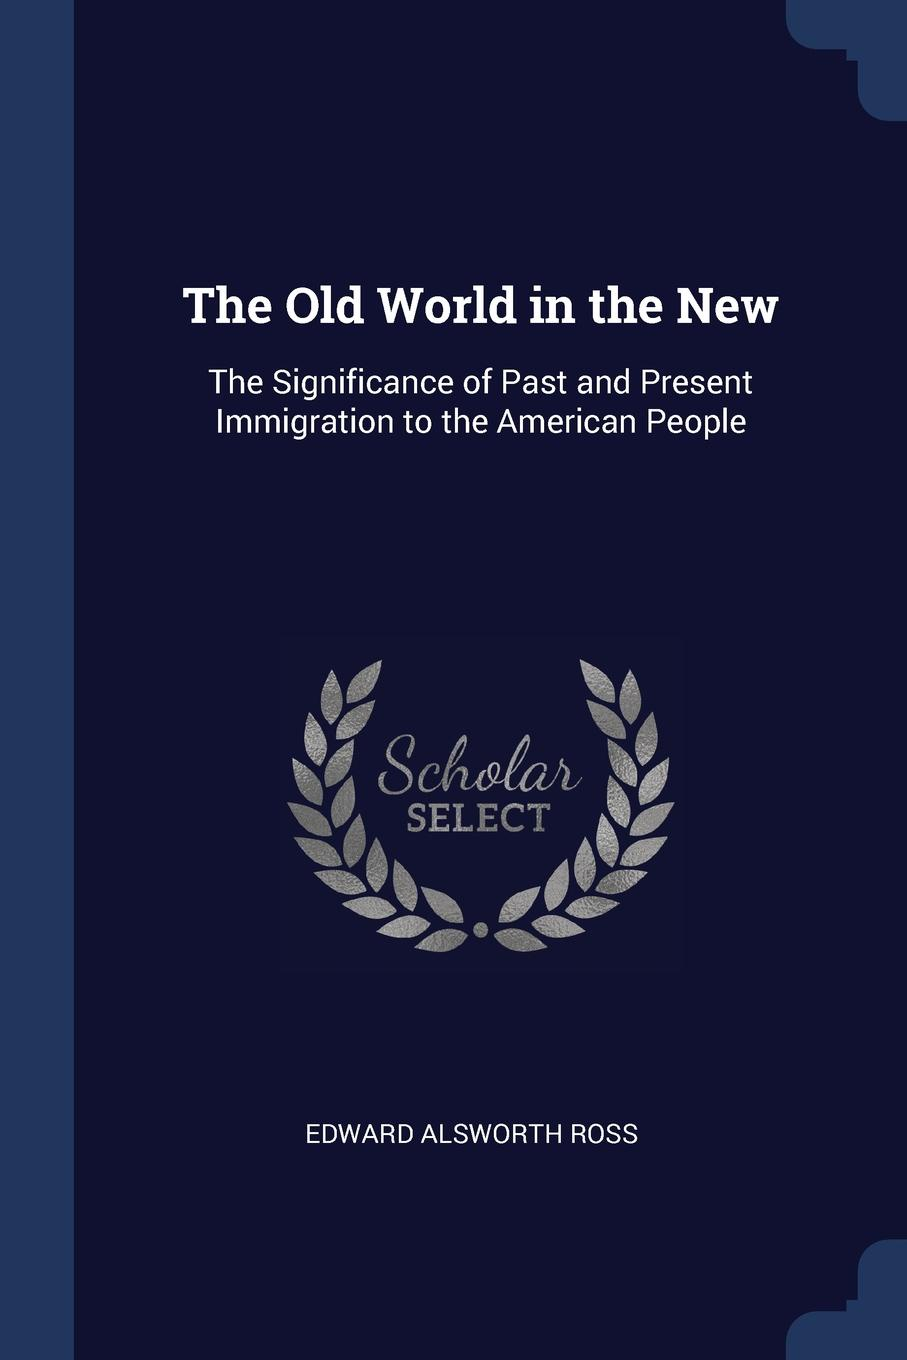 Edward Alsworth Ross The Old World in the New. Significance of Past and Present Immigration to American People